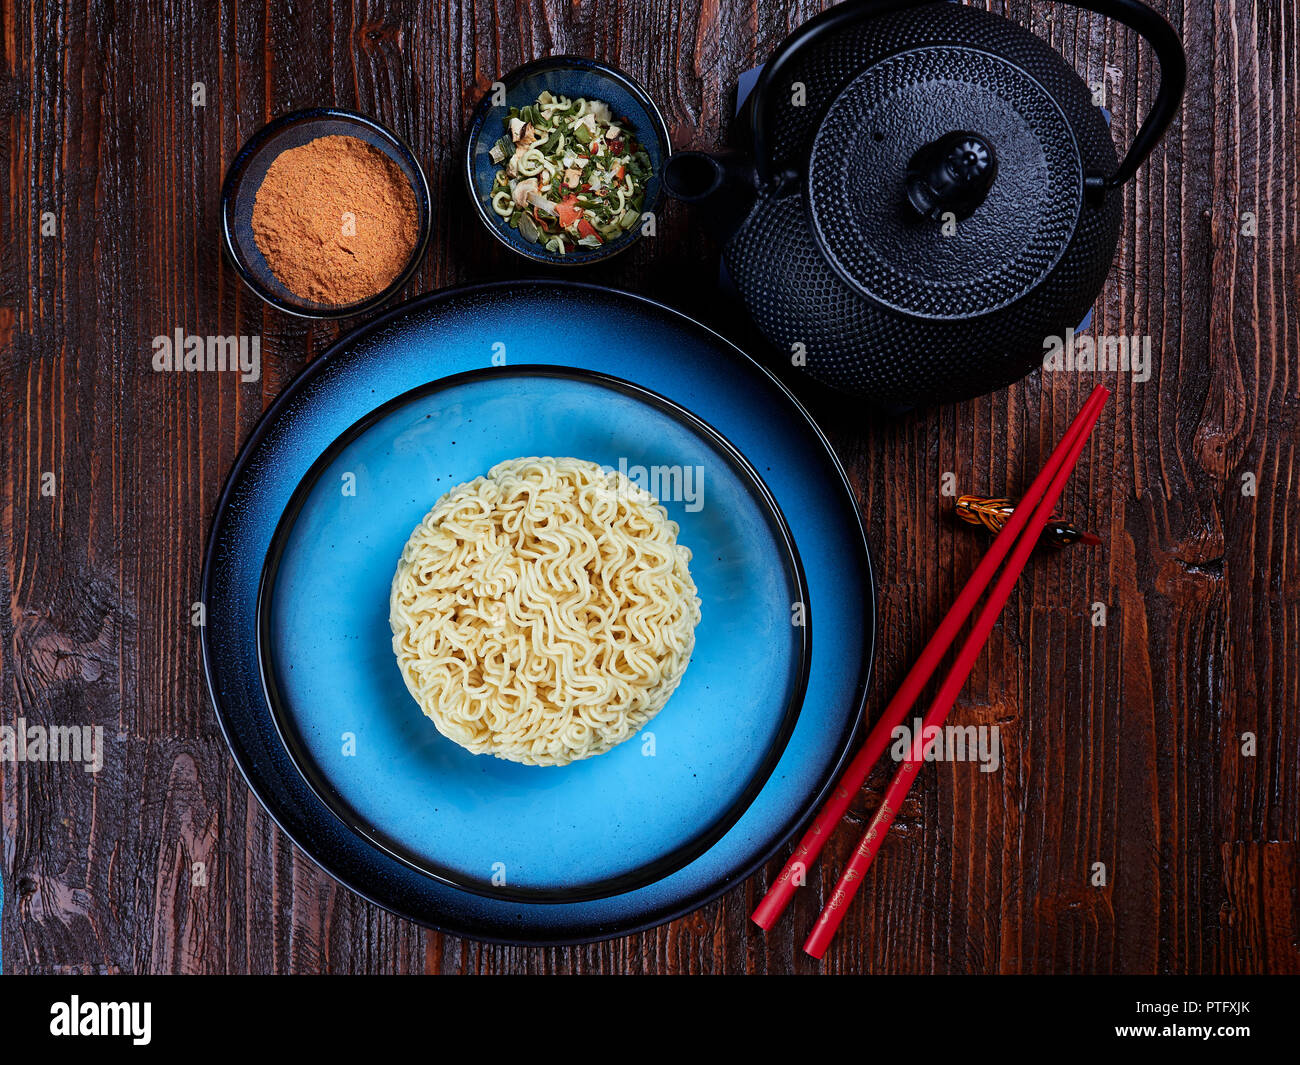 Ingredients for Shin Ramyun, a popular Korean noodle dish with an intense spicy flavour - Stock Image